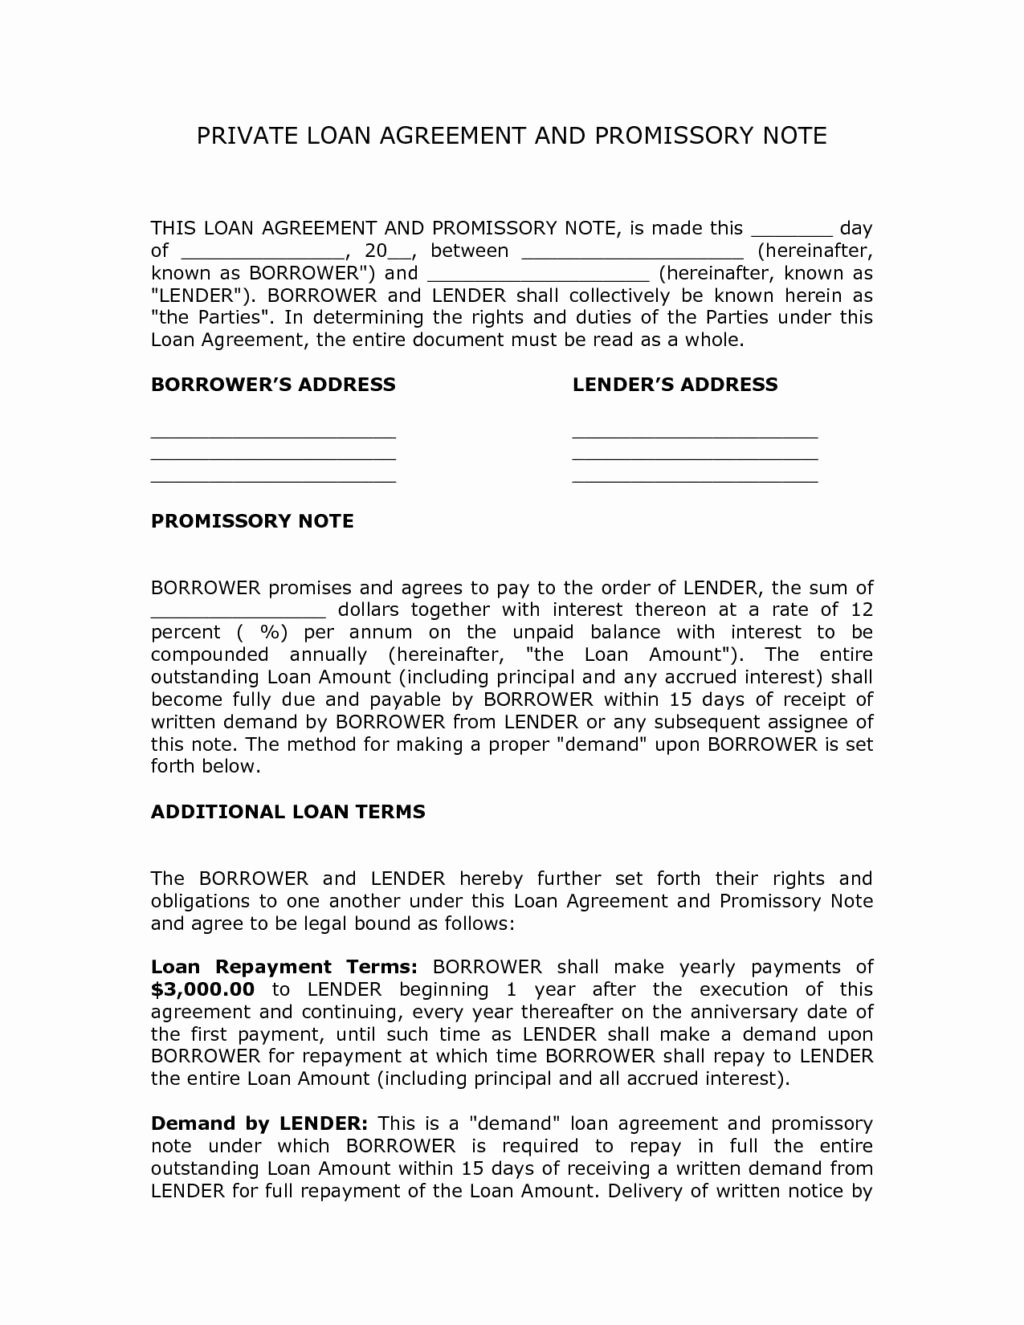 Private Personal Loan Agreement Contract Template and